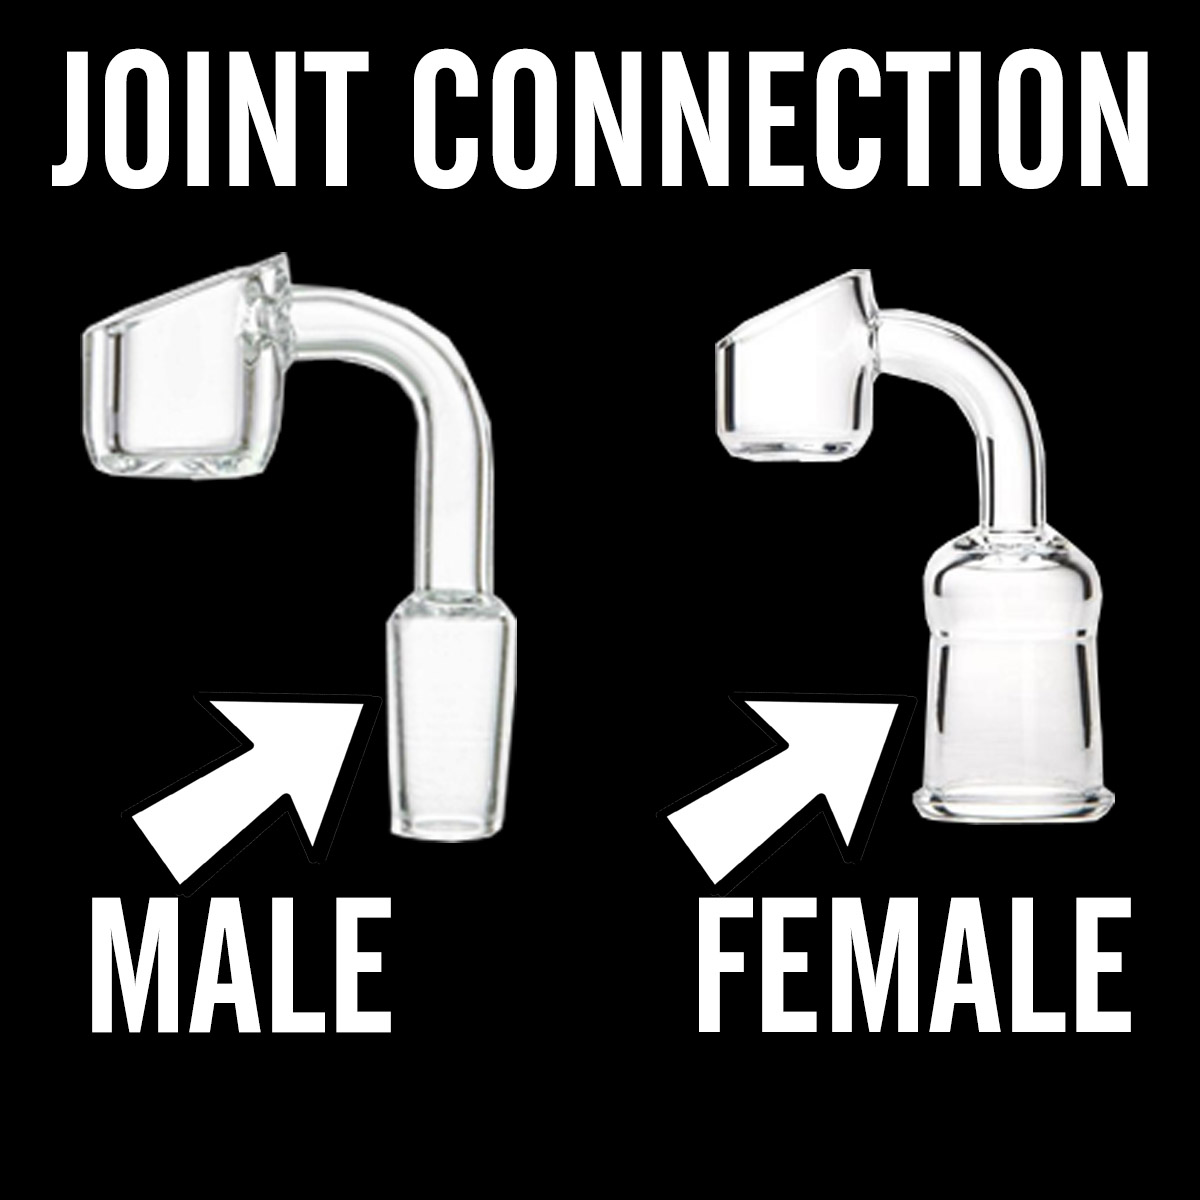 joint-connection.jpg